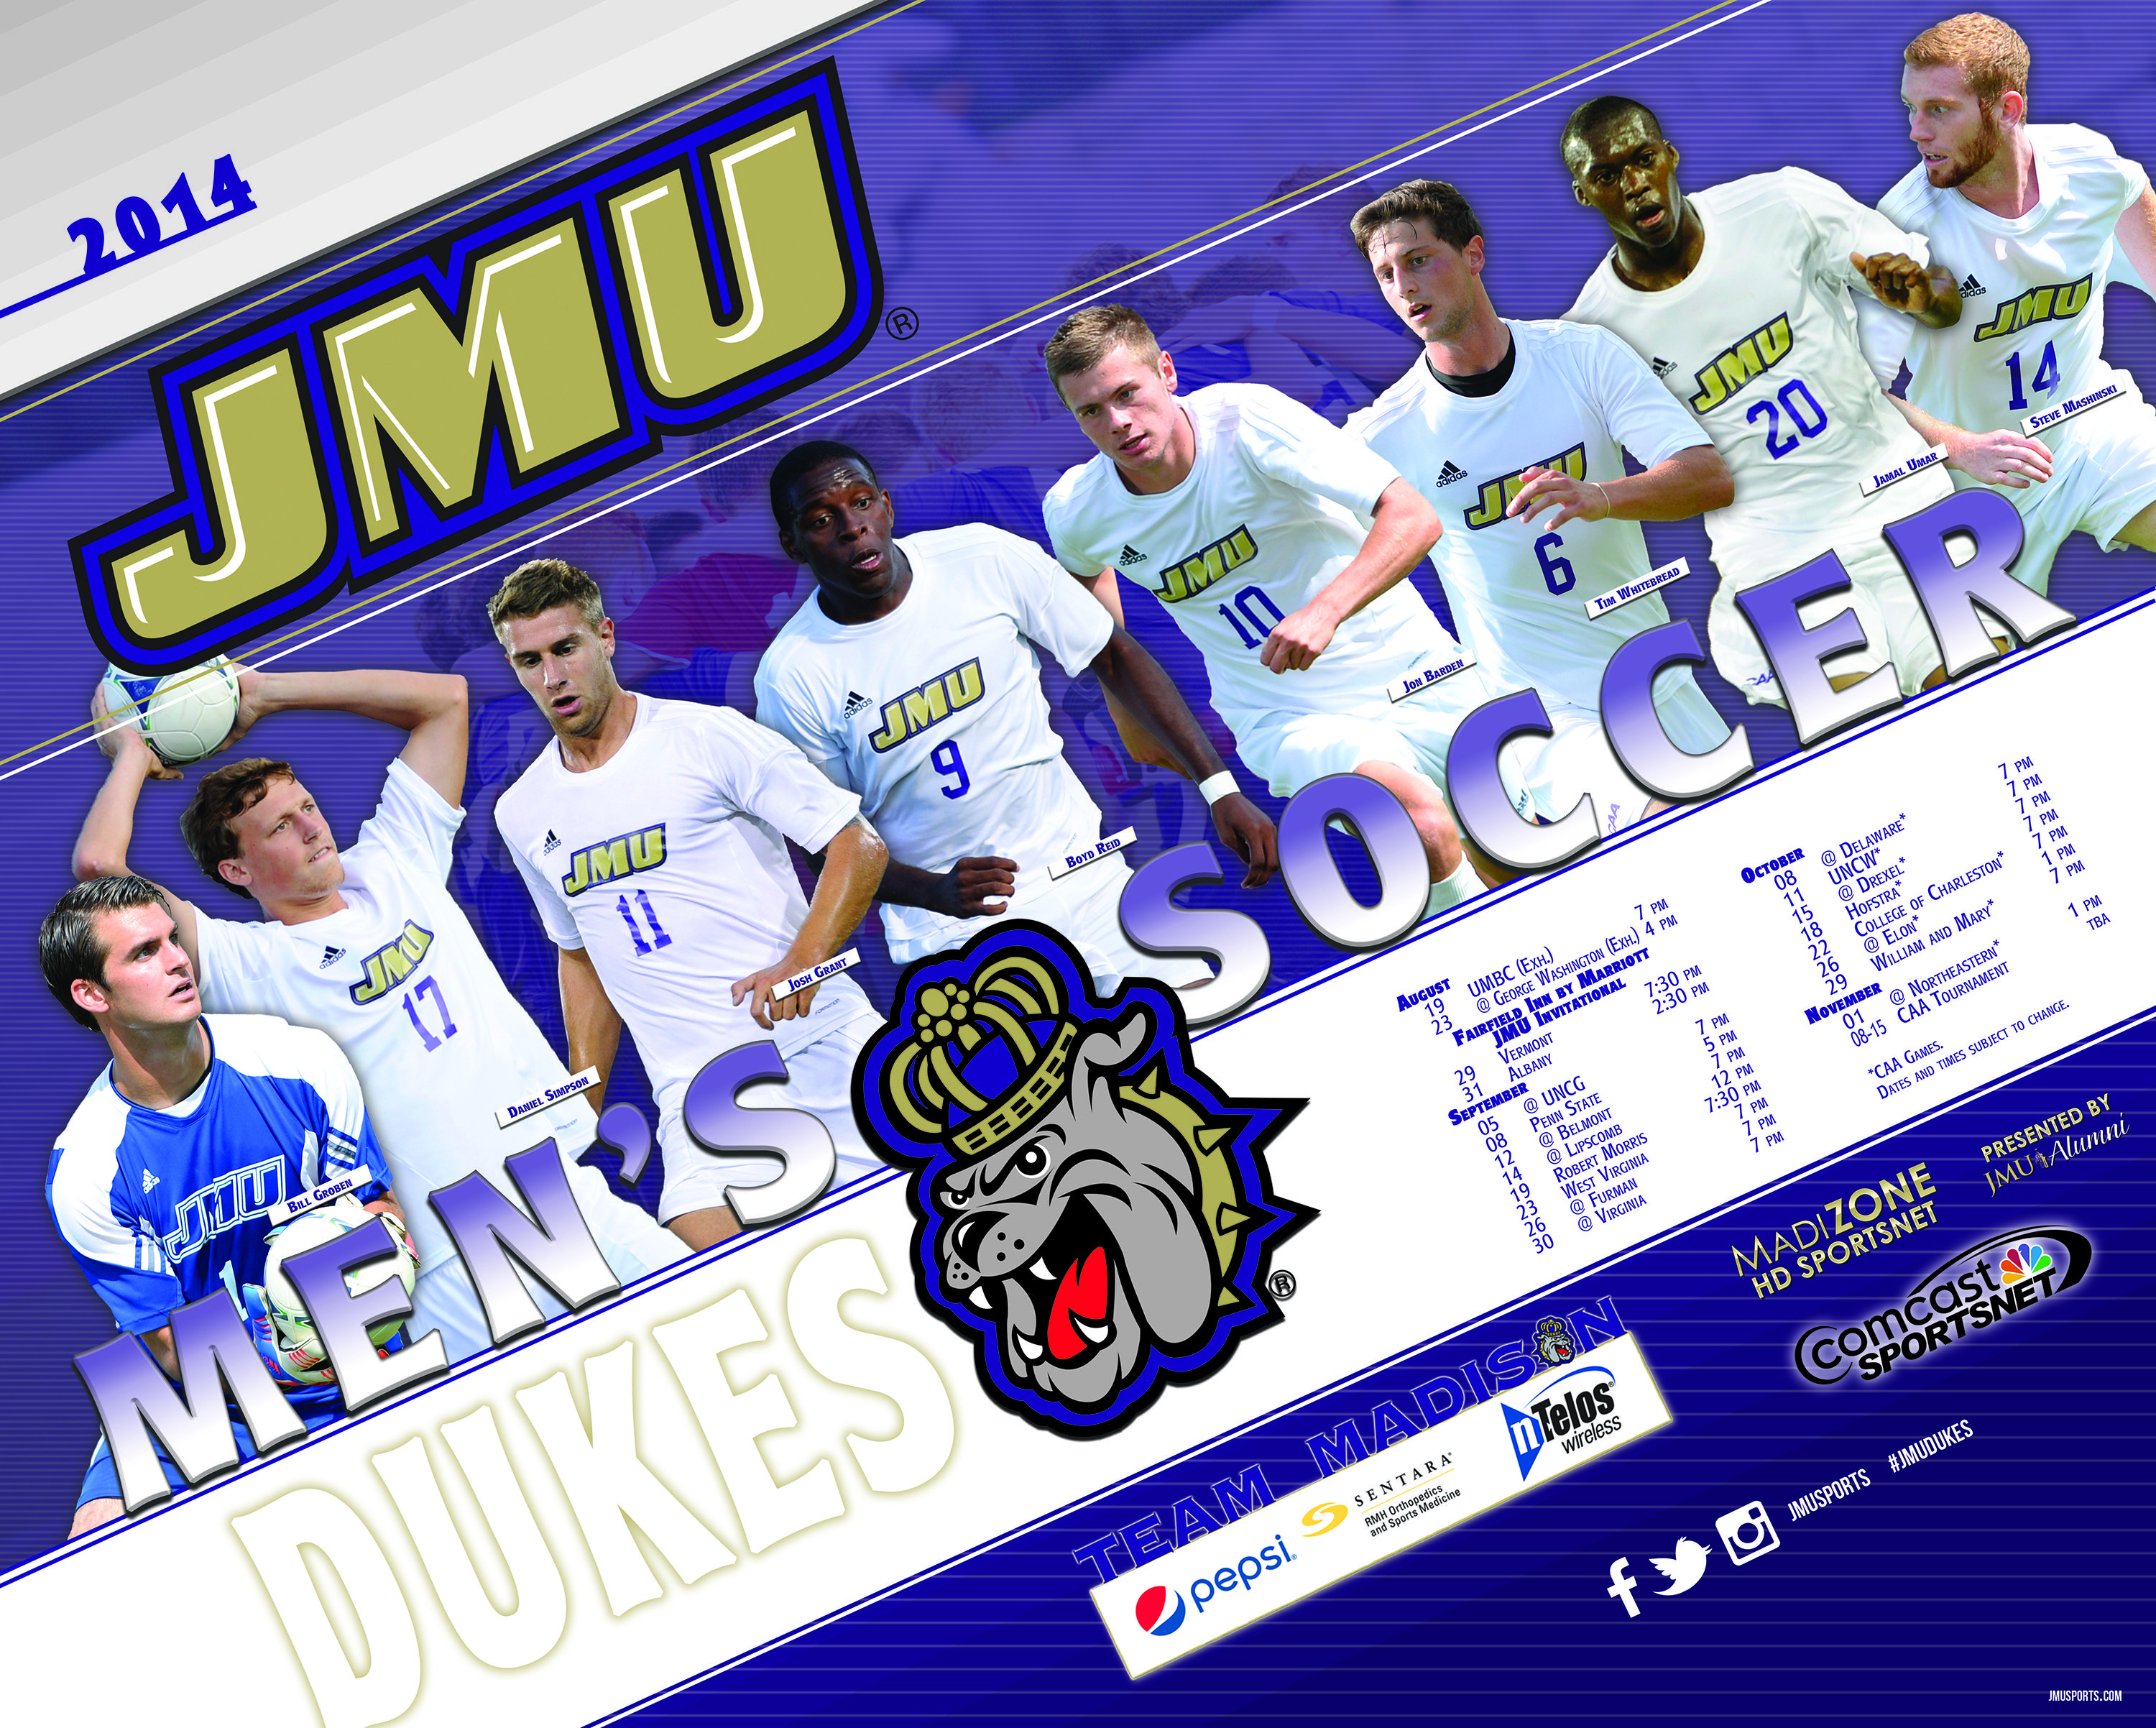 The 2014 JMU men's soccer schedule poster! Click to